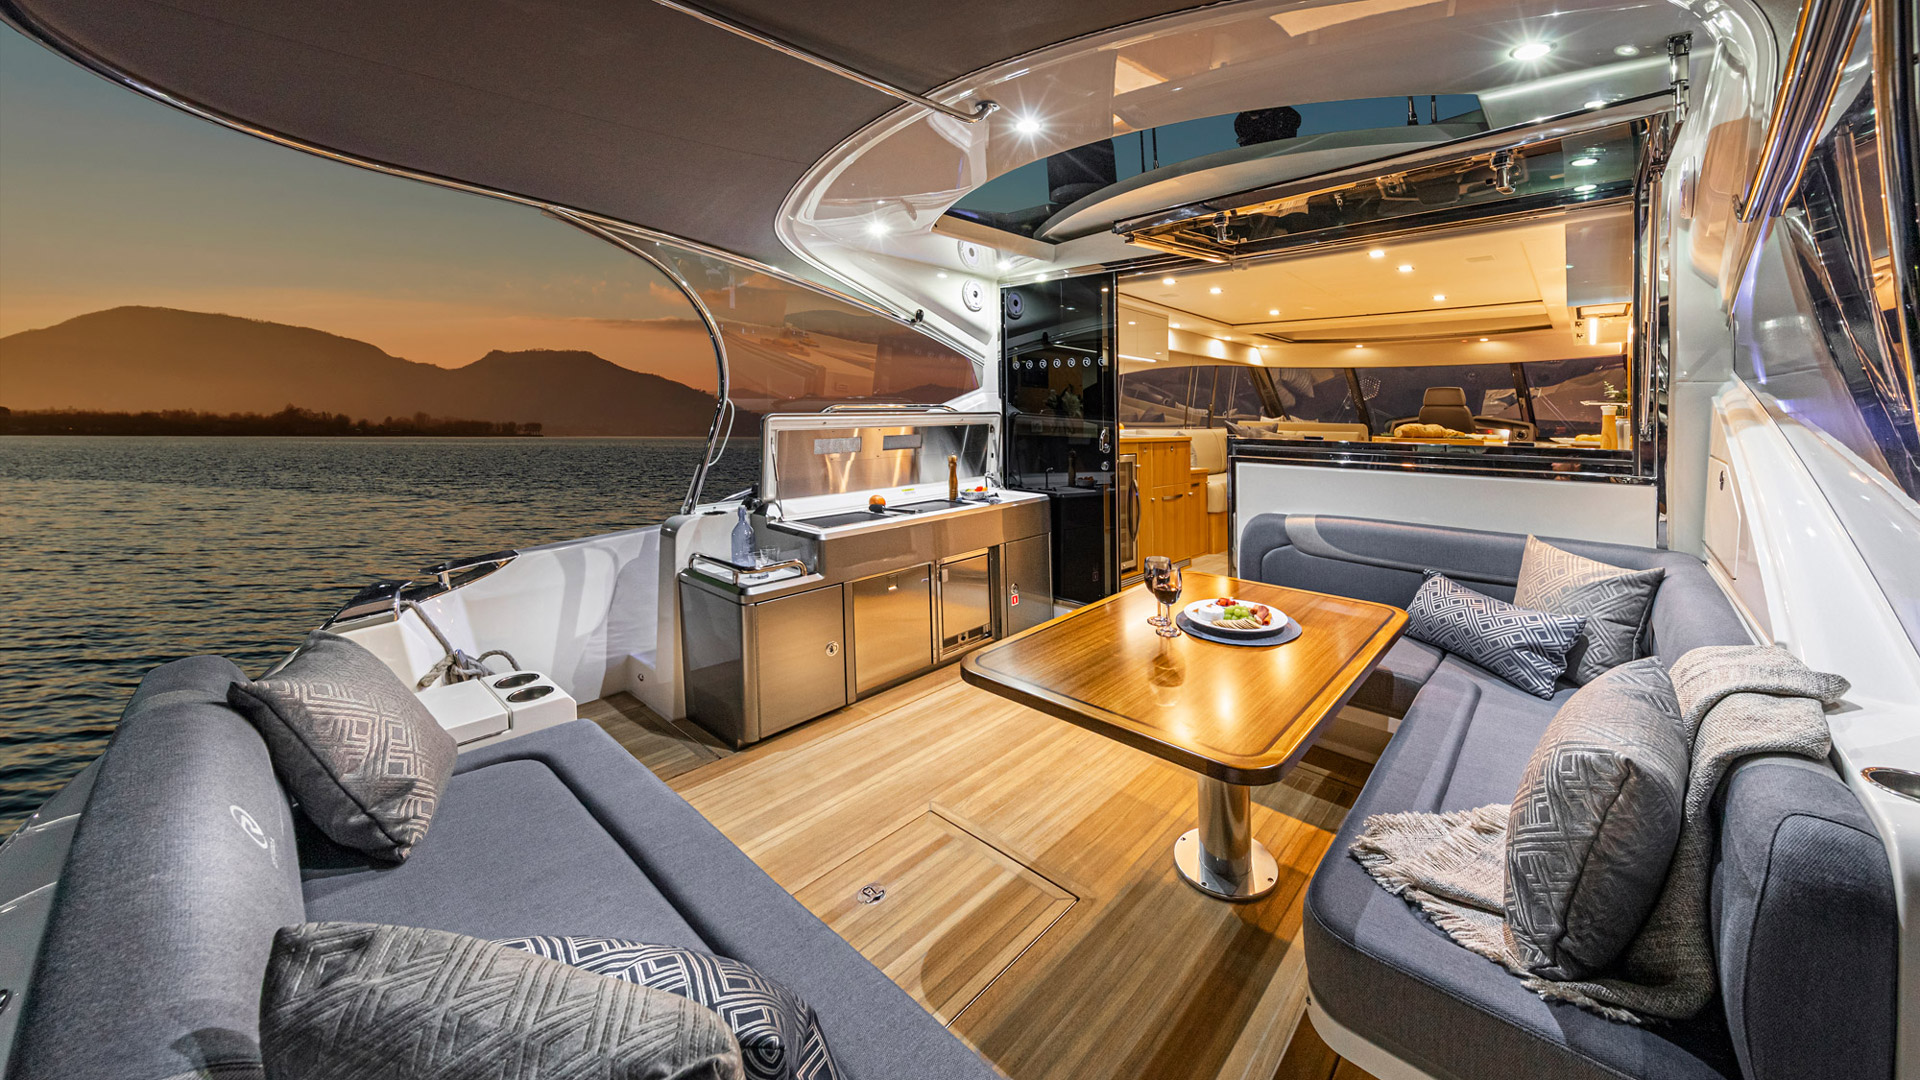 Entertainment area onboard the Riviera 5400 Sports Yacht Platinum Edition